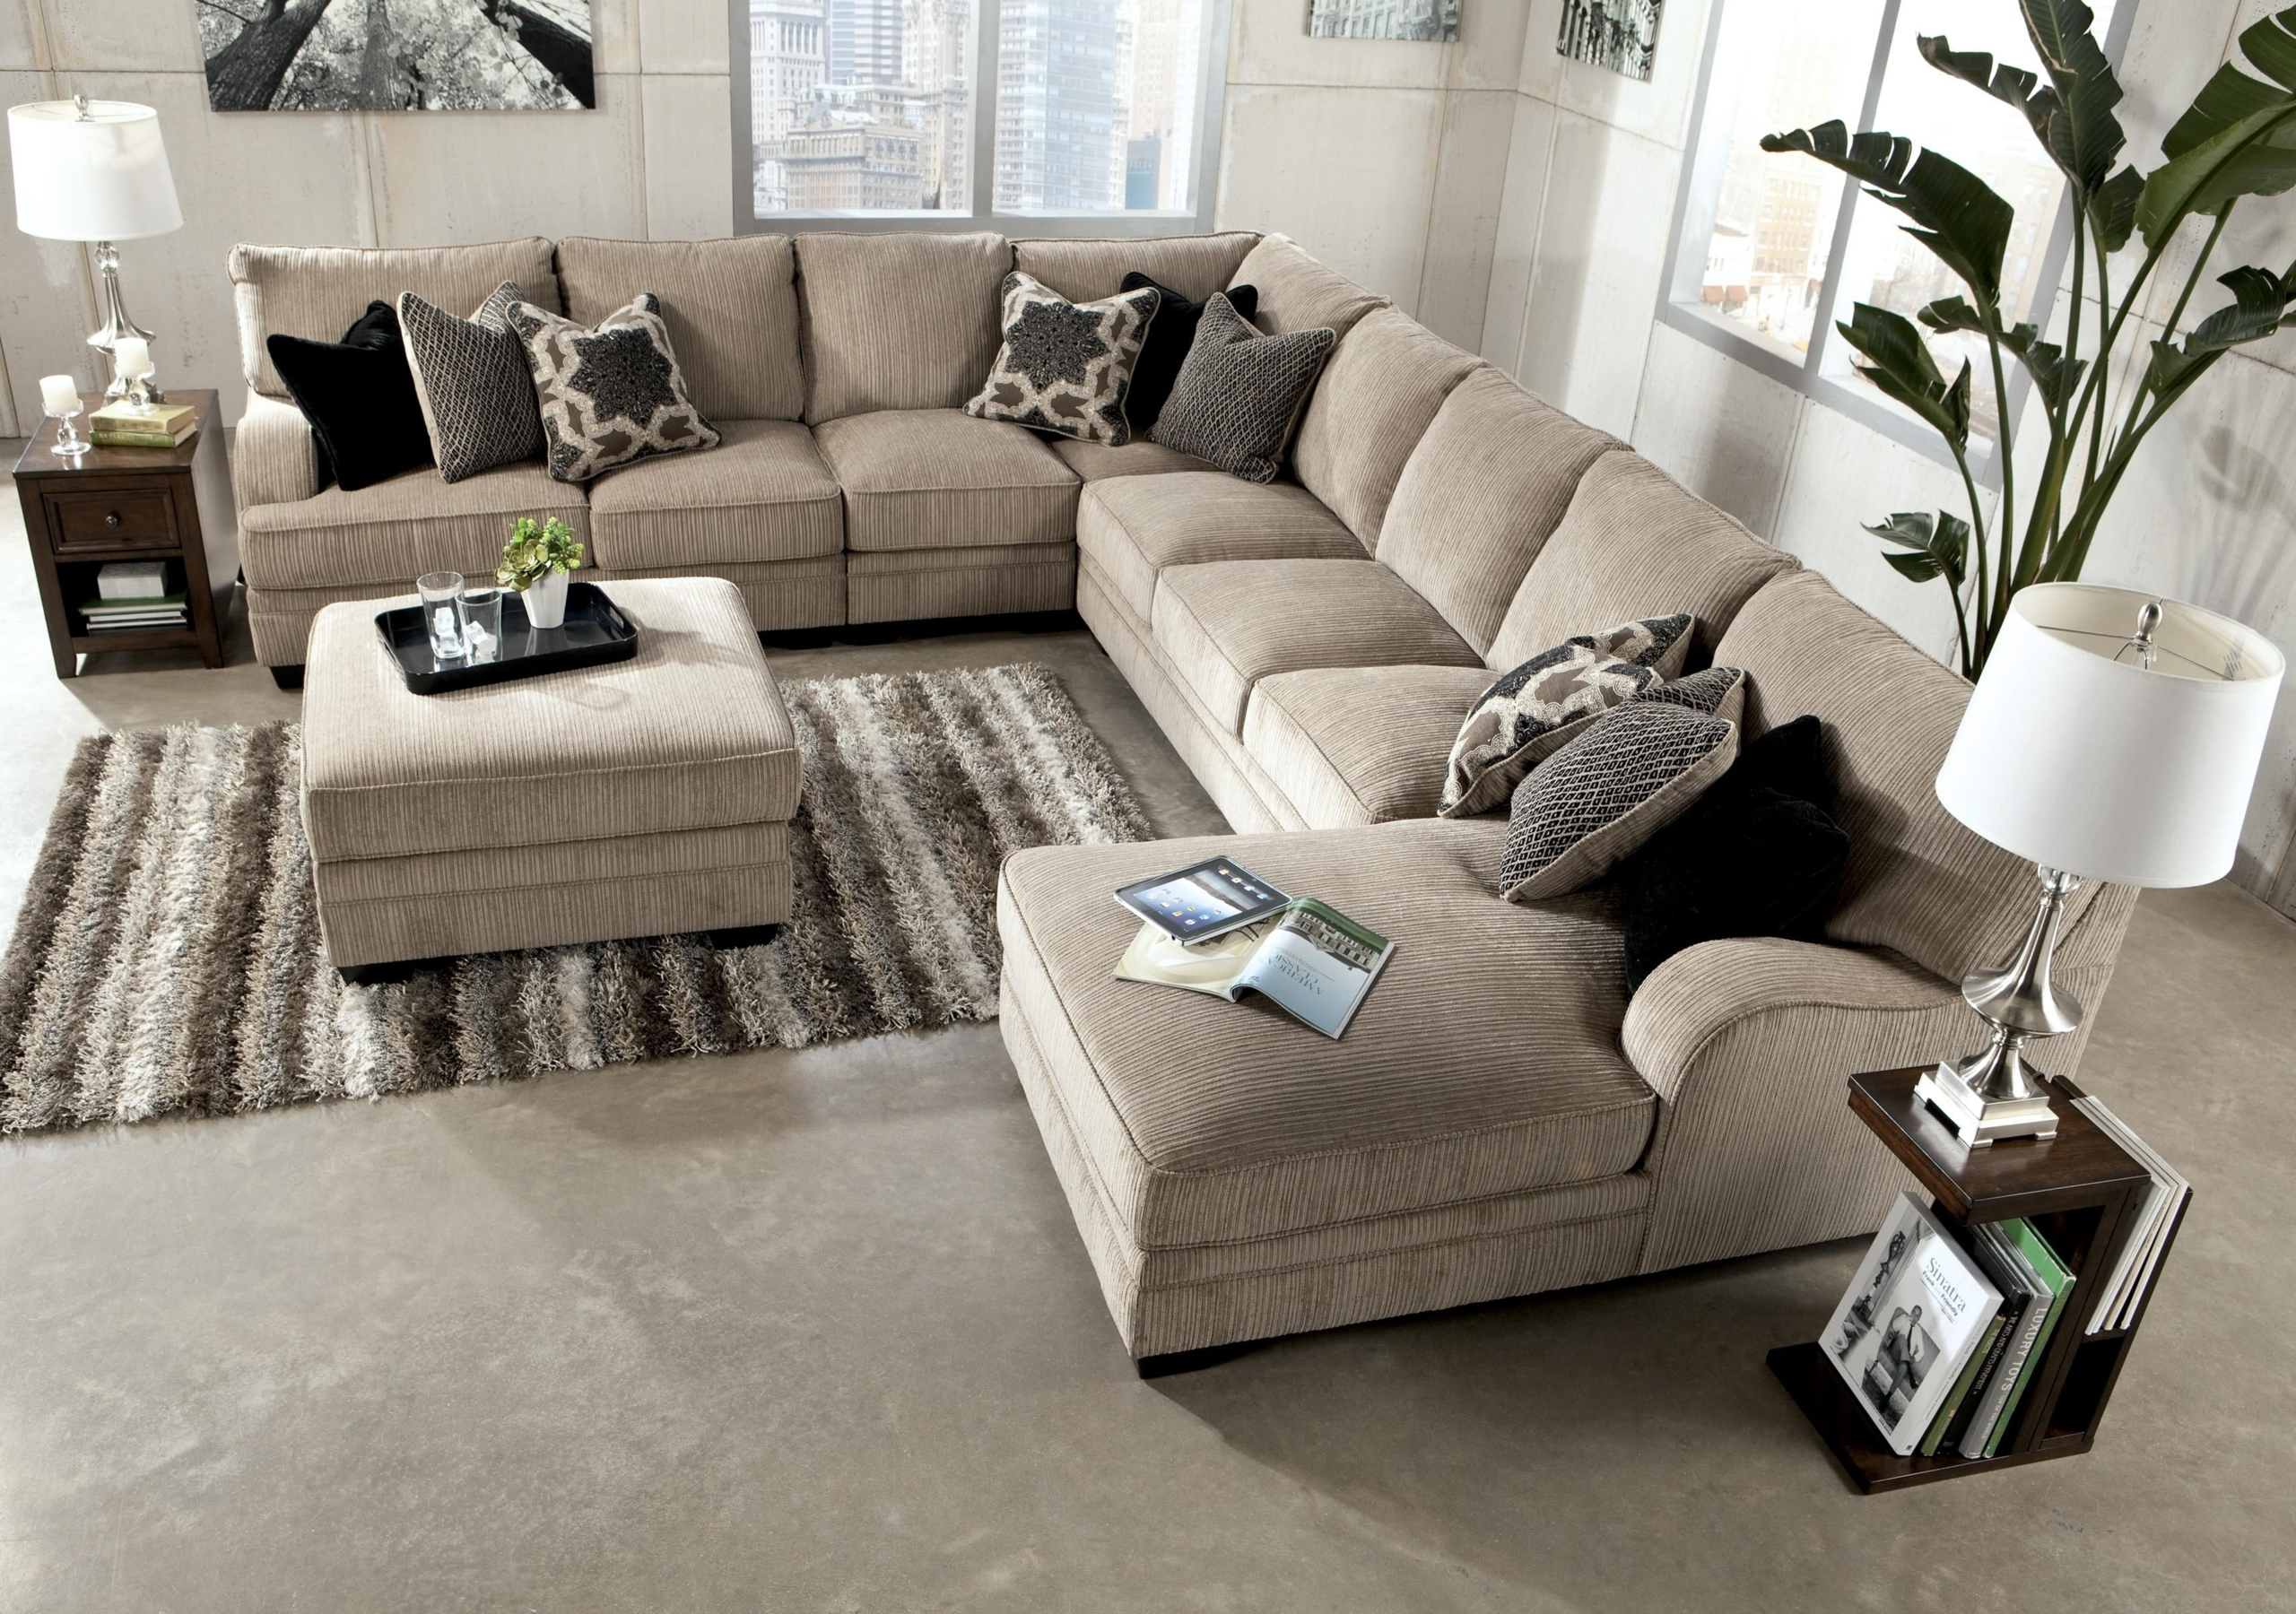 extra large sectional sofa visual hunt rh visualhunt com Sectional Sofa with Chaise Lounge Brown Leather Sectional Sofa